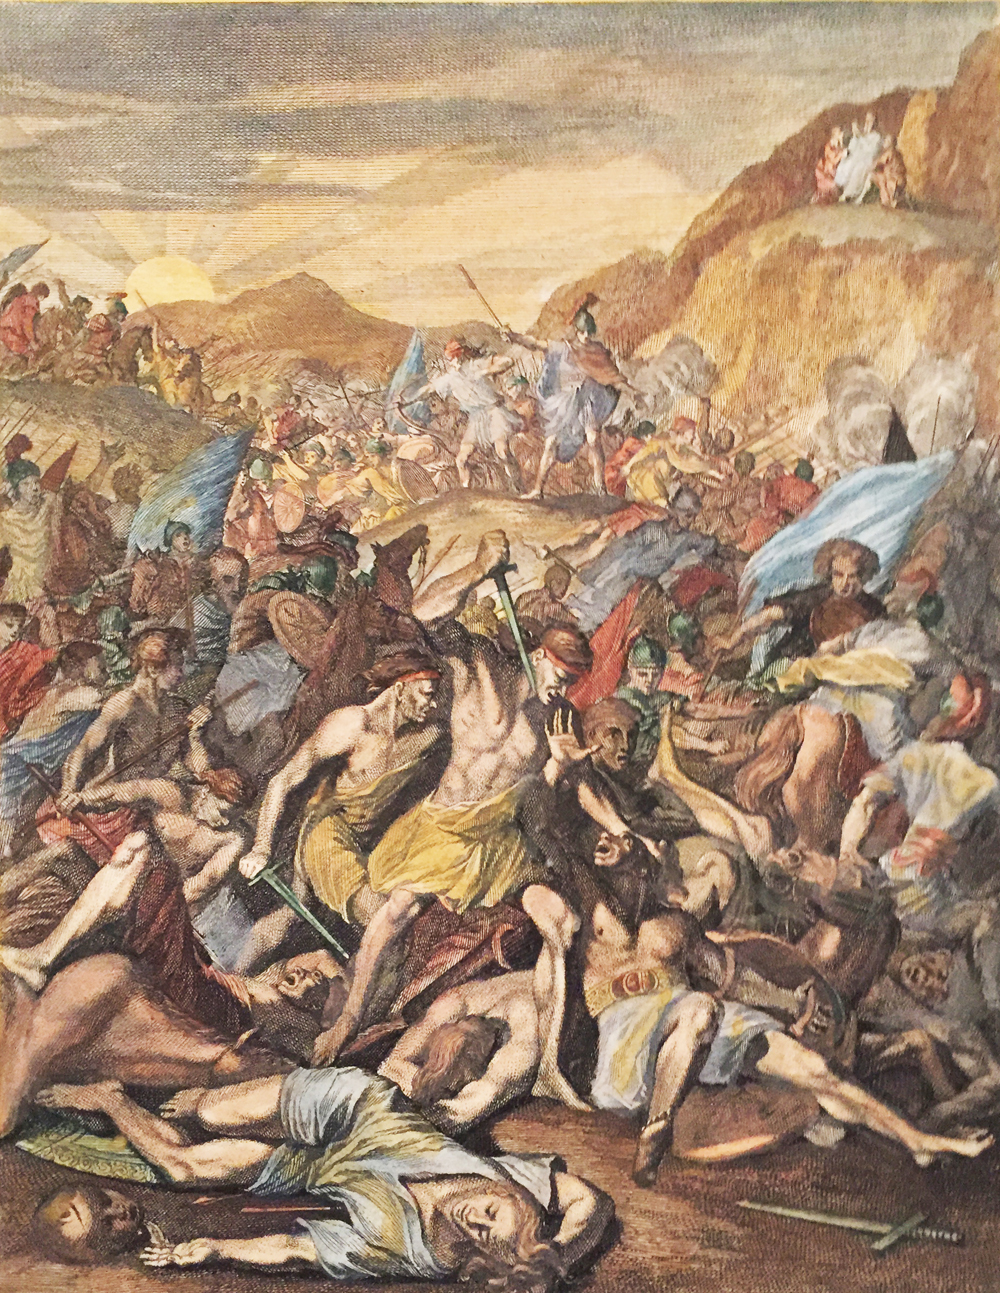 Amalekites attacks the Israelits